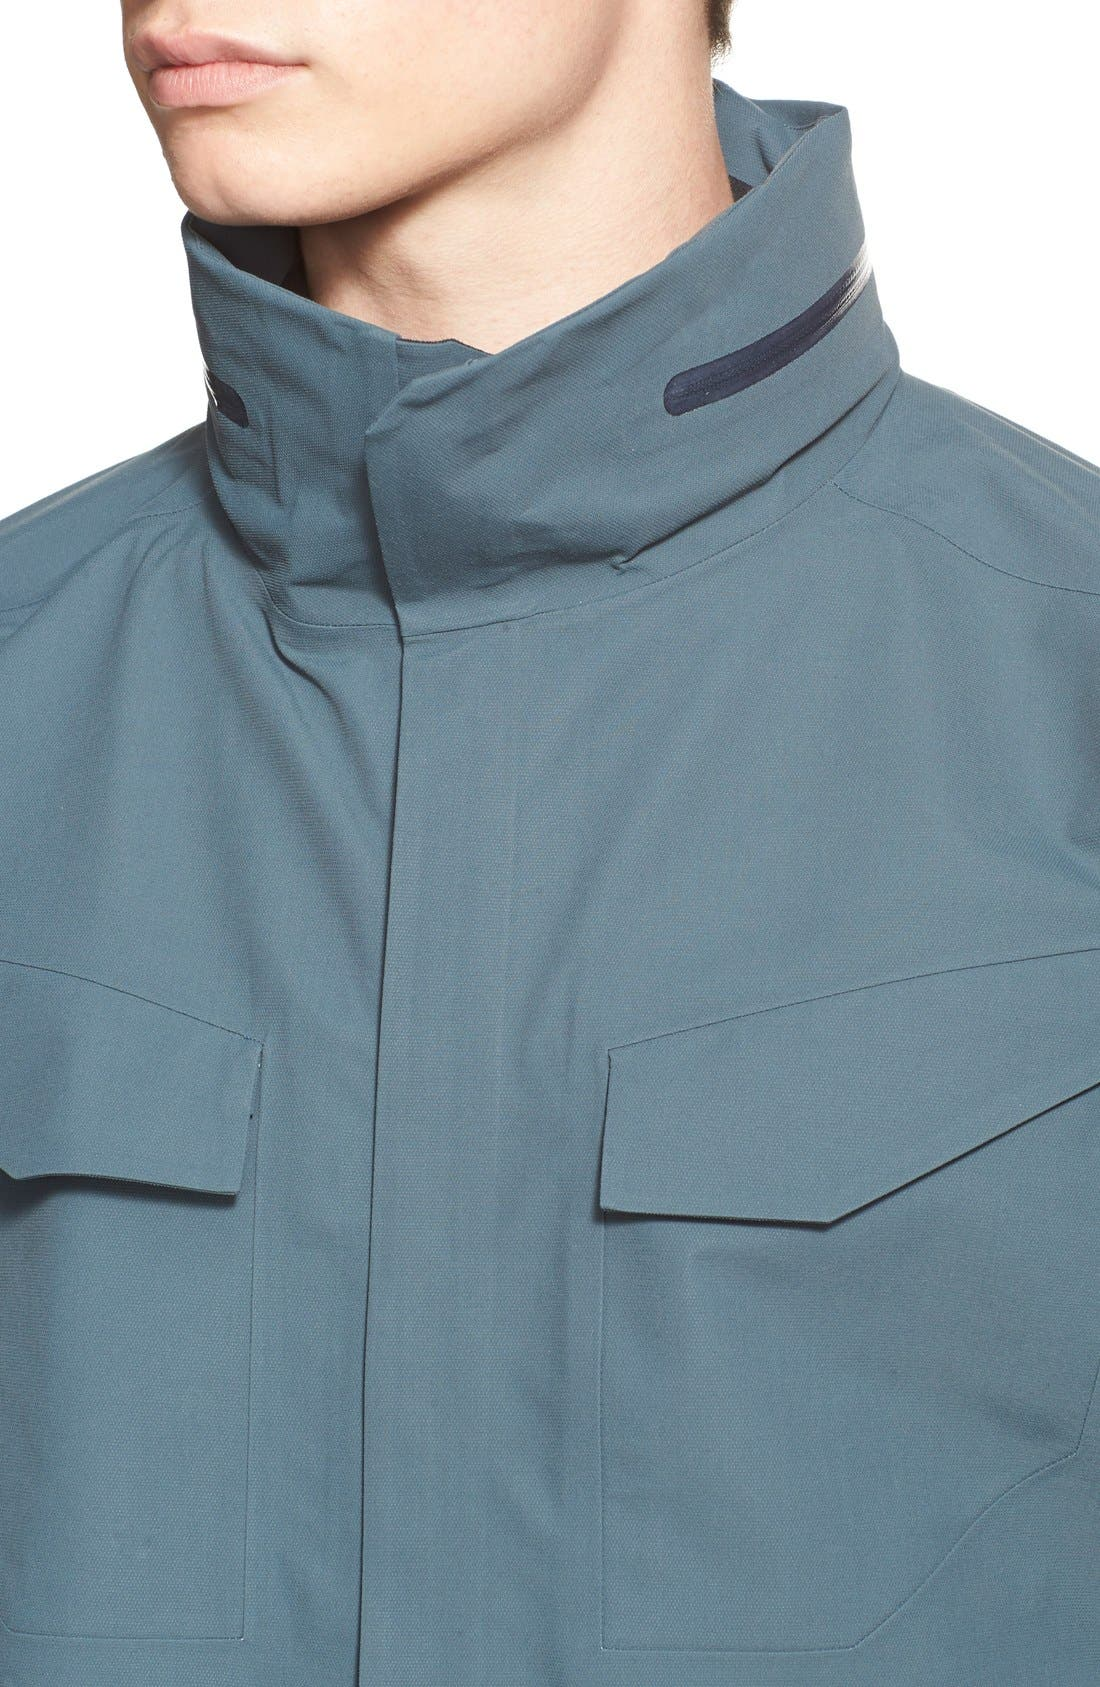 ARC'TERYX VEILANCE,                             Waterproof Field Jacket,                             Alternate thumbnail 4, color,                             400